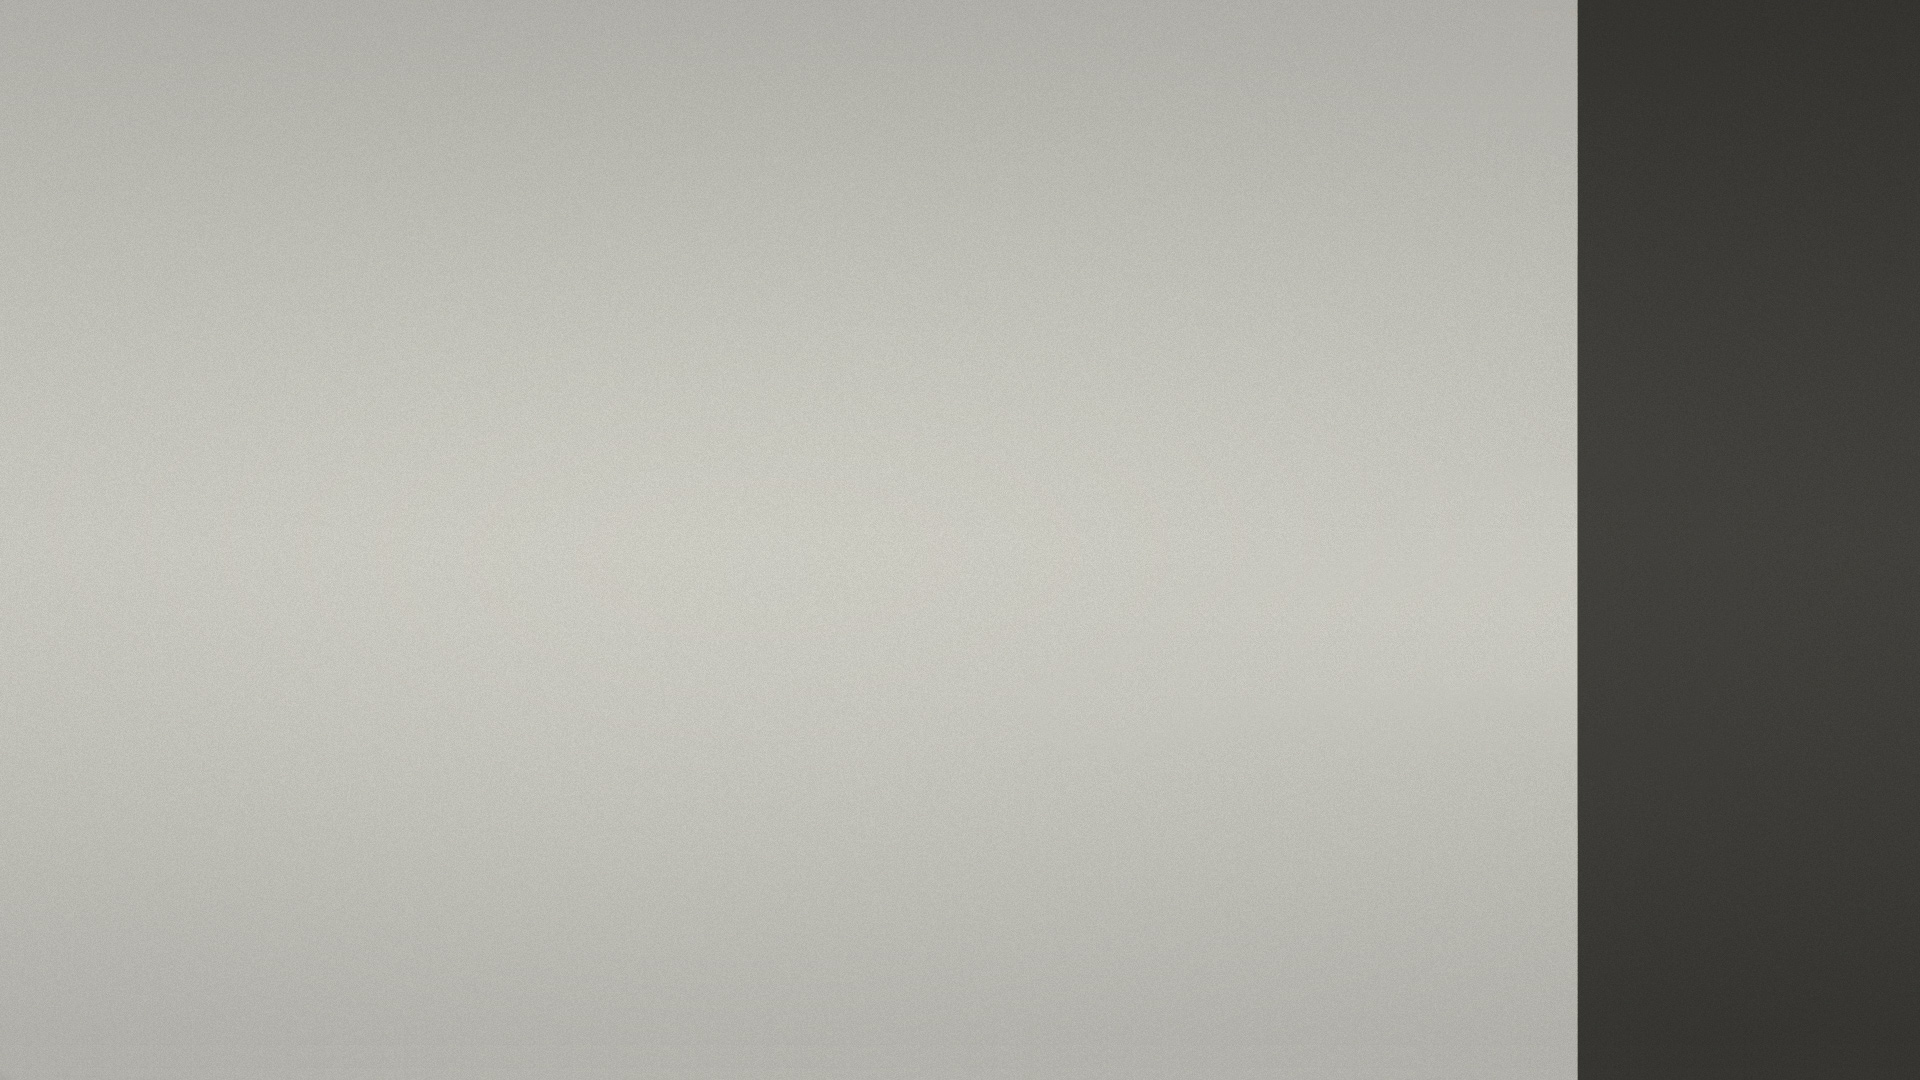 minimalist wallpaper minimal desktop images 1920x1080 1920x1080